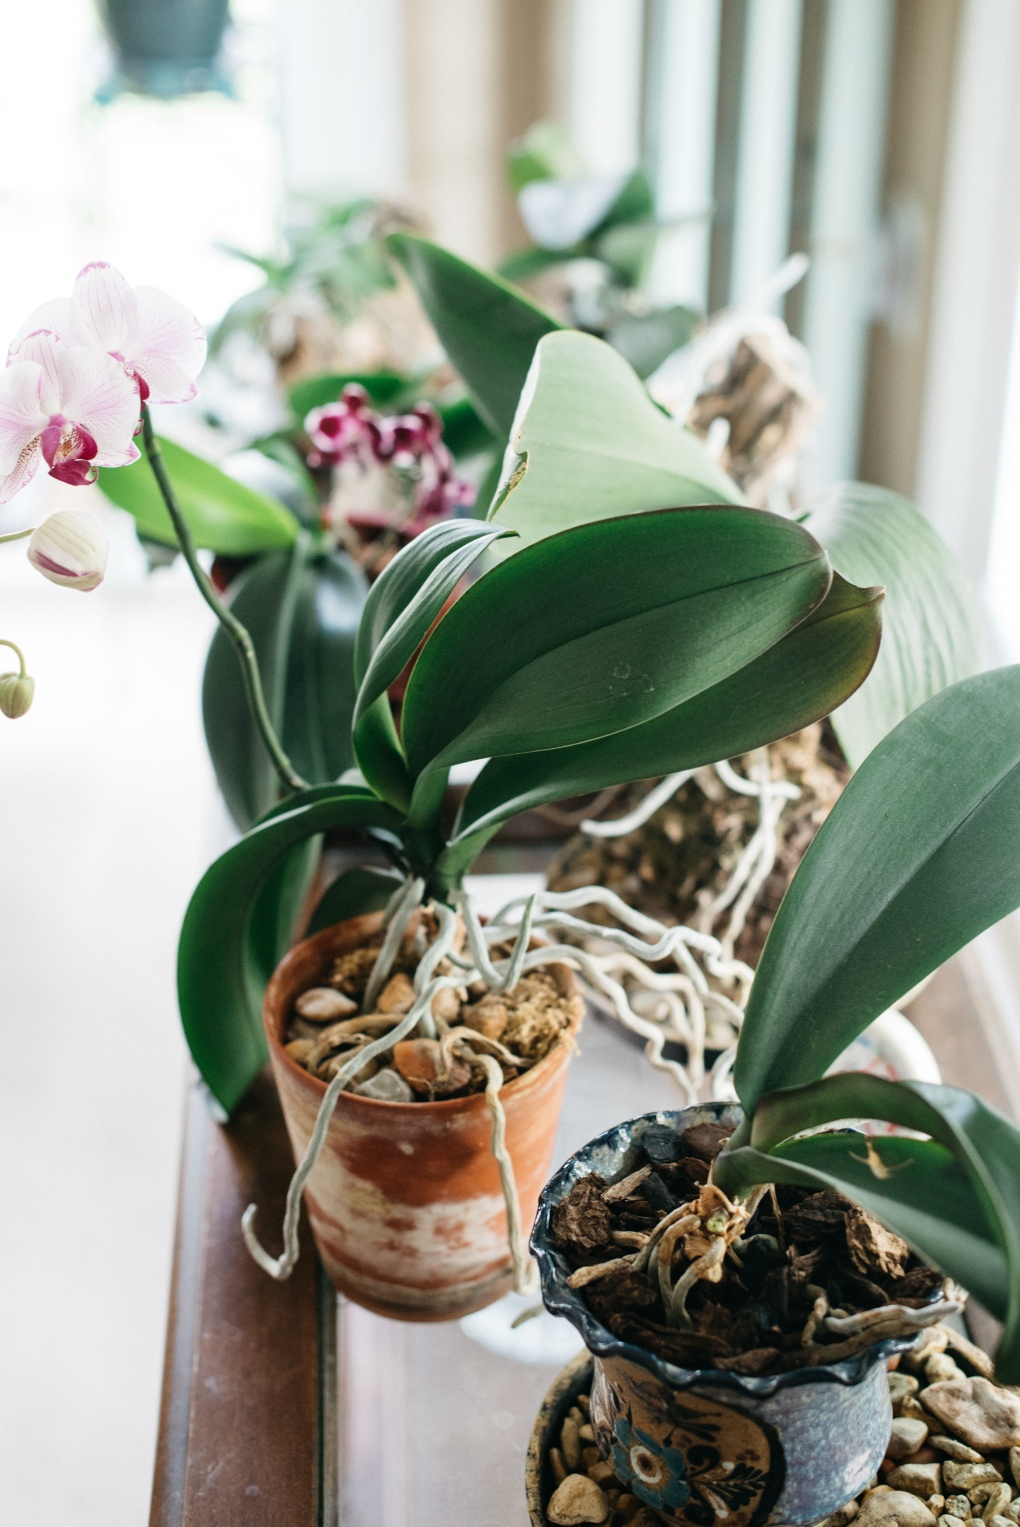 Guide to Caring for Phalaenopsis Orchids - Moth Orchid Care